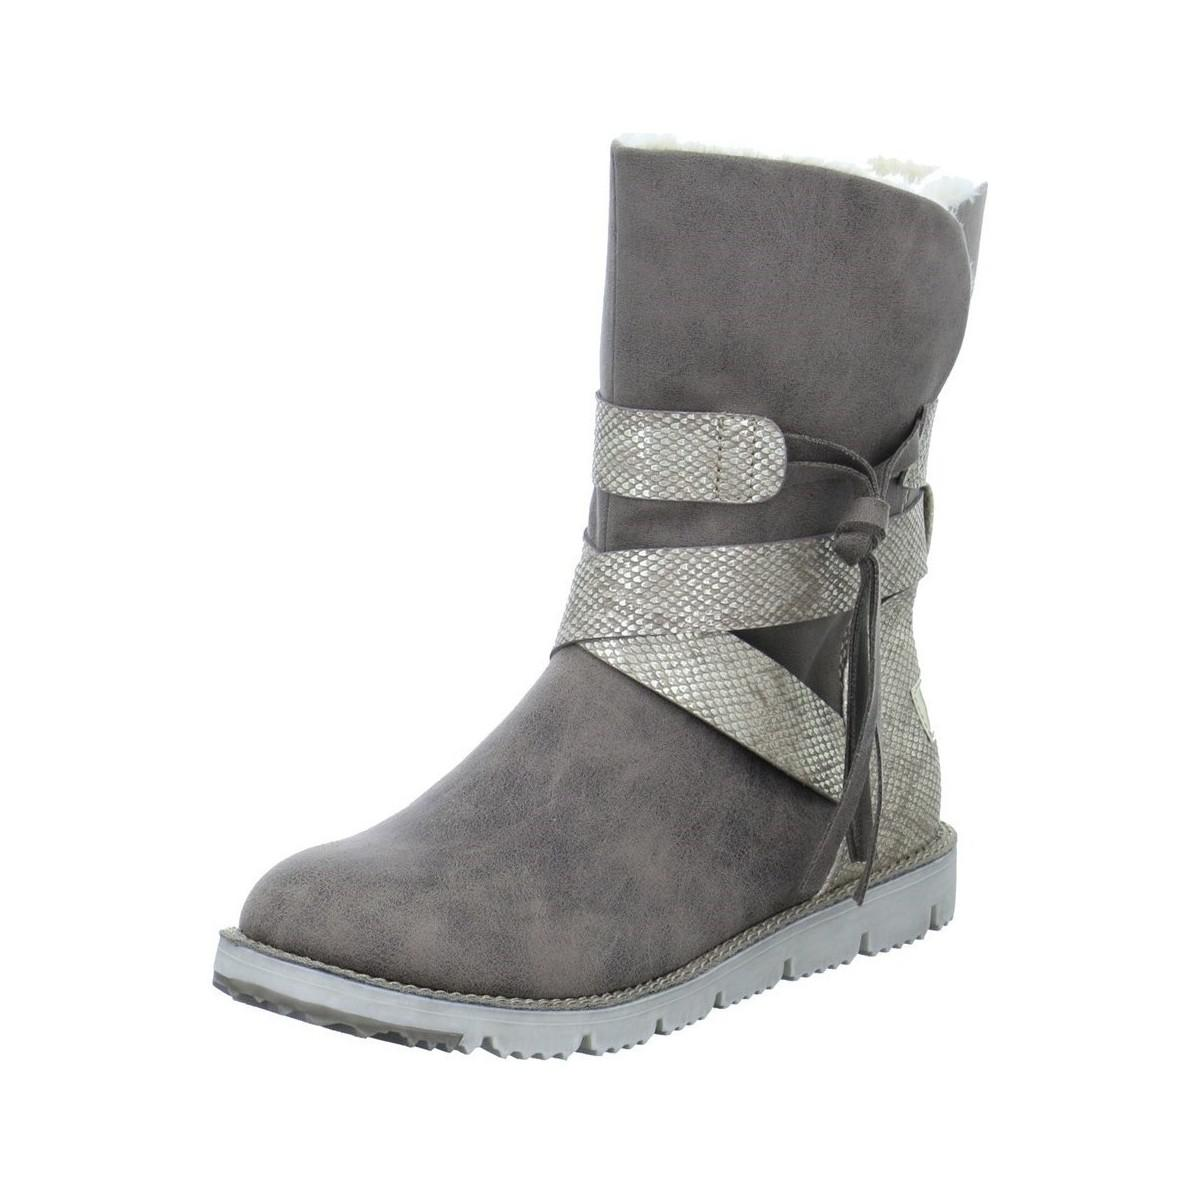 Outlet Where Can You Find s.Oliver 552648129347 women's Snow boots in Sale Supply 100% Authentic Cheap Price Pictures For Sale B2oTMYVY4Y